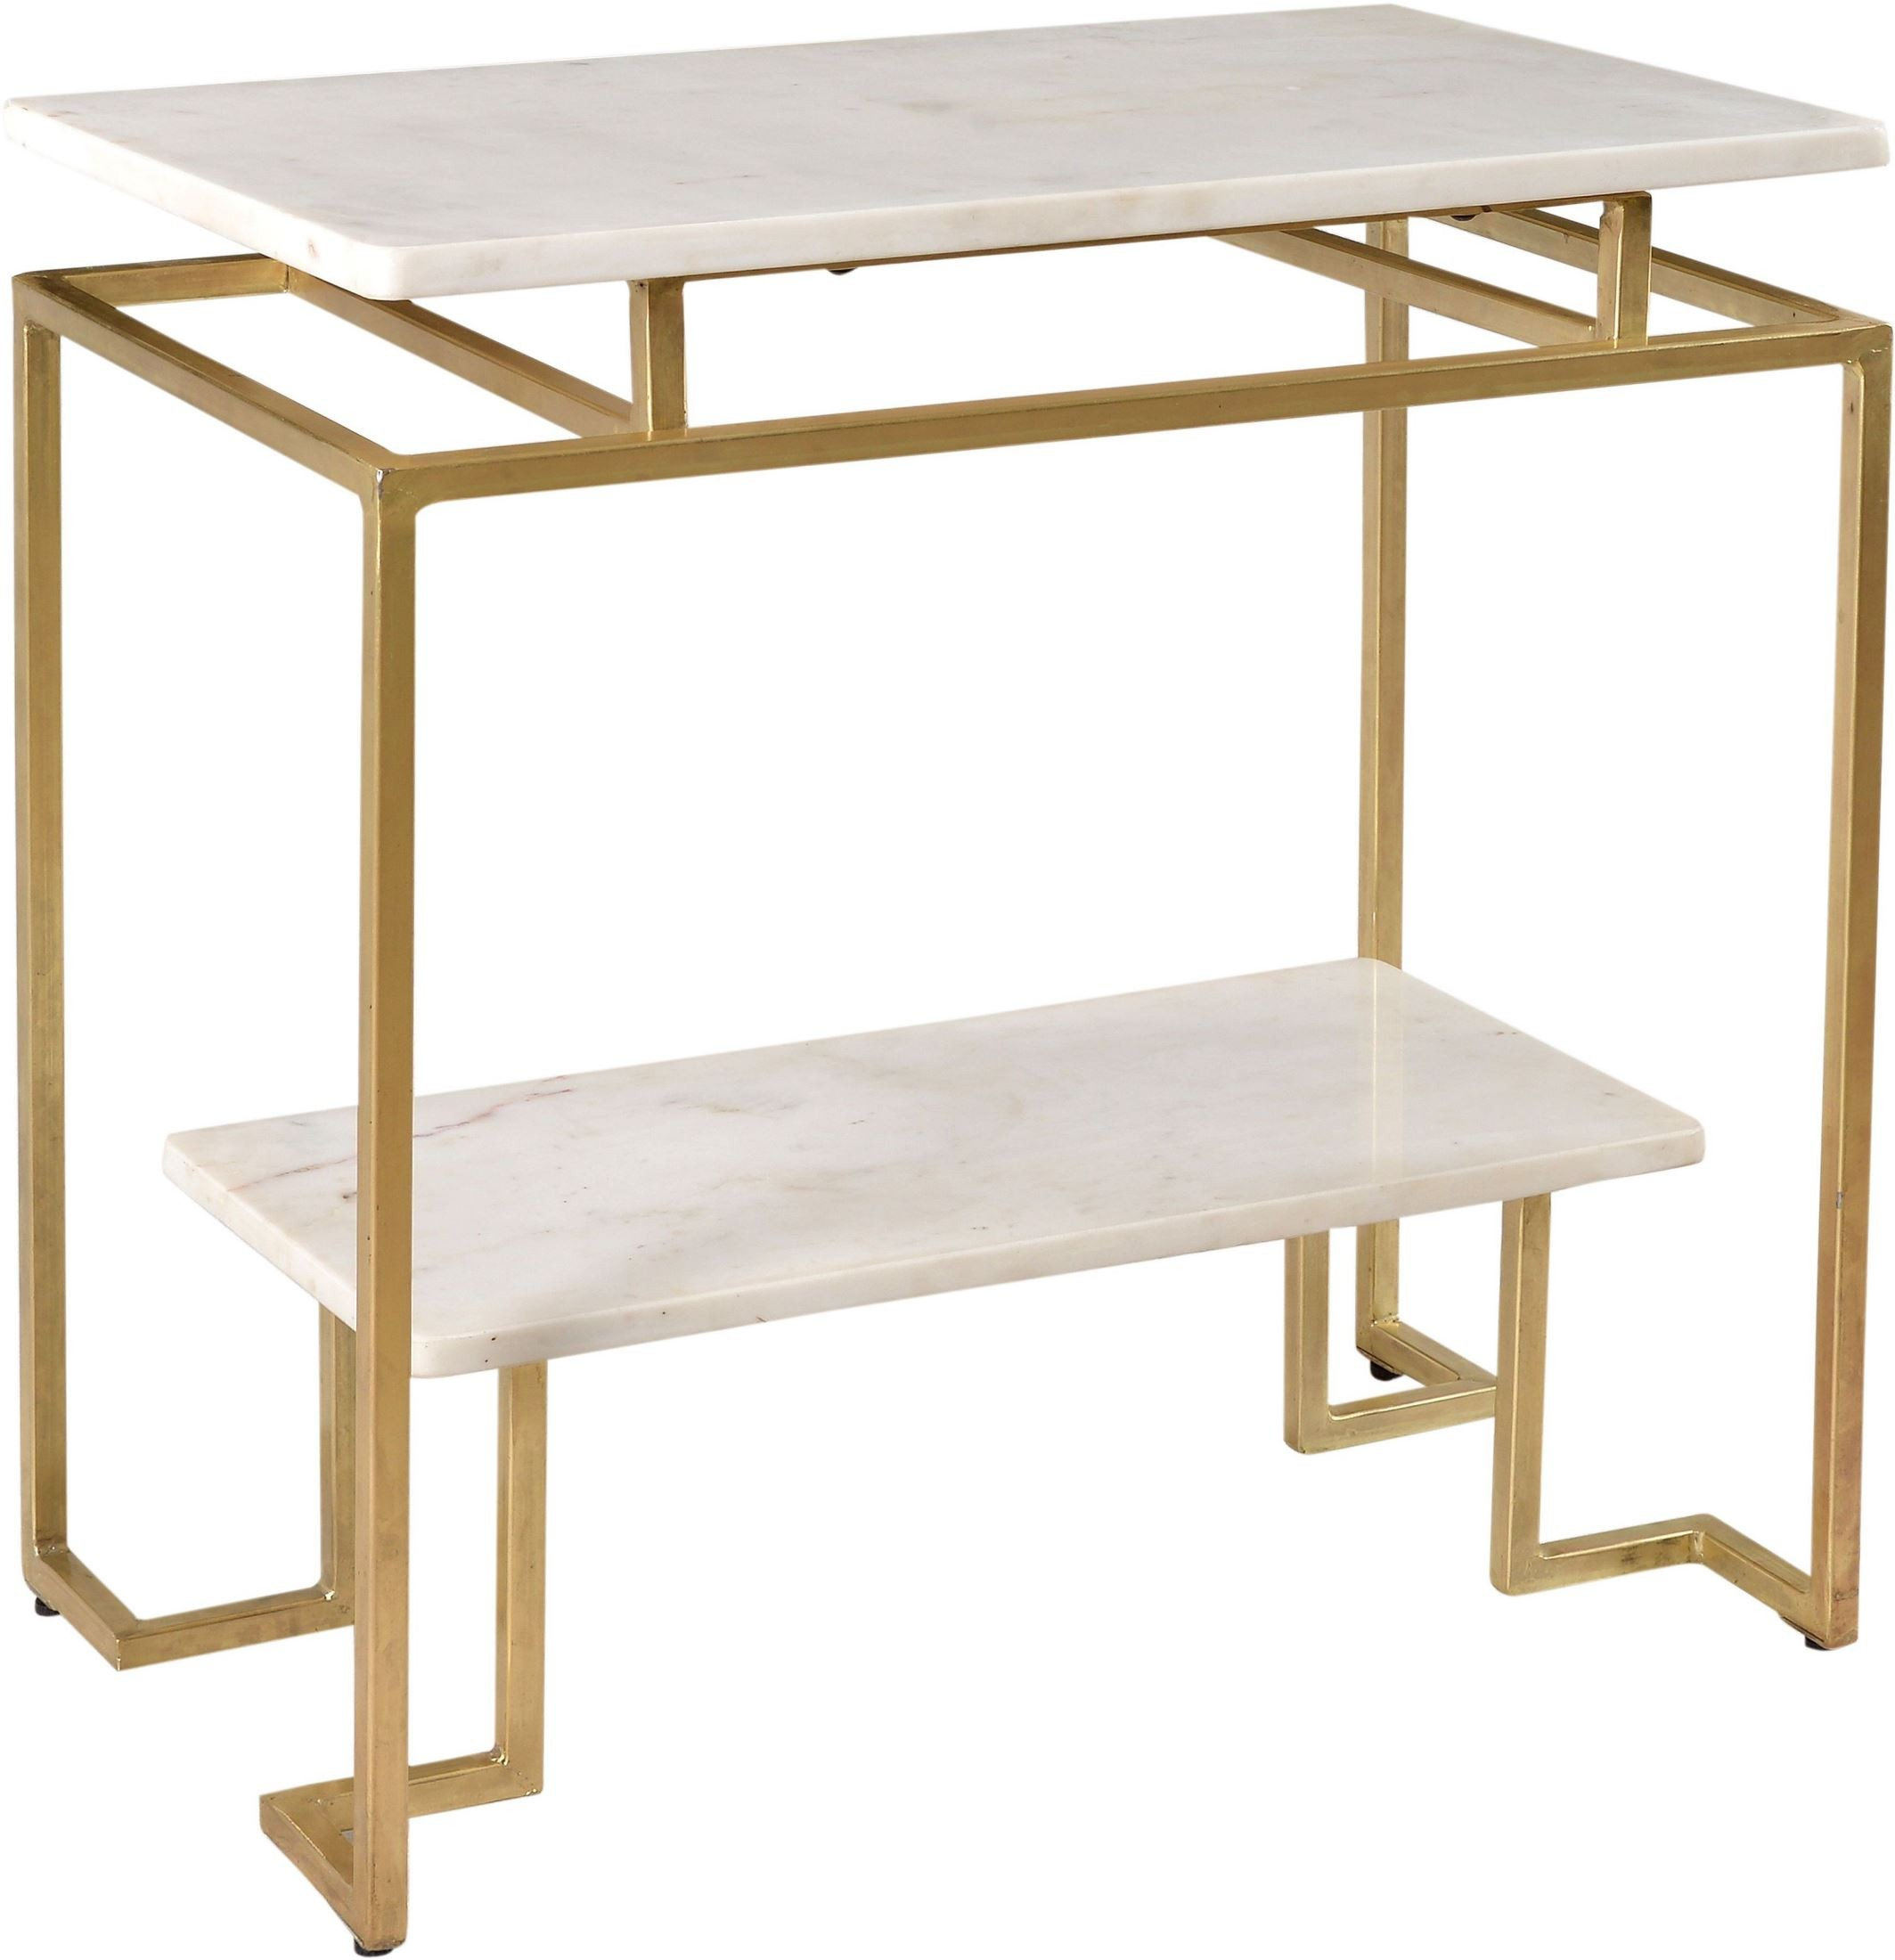 table hover productdetail zoom uttermost sale htm vevina to antique gold on accent